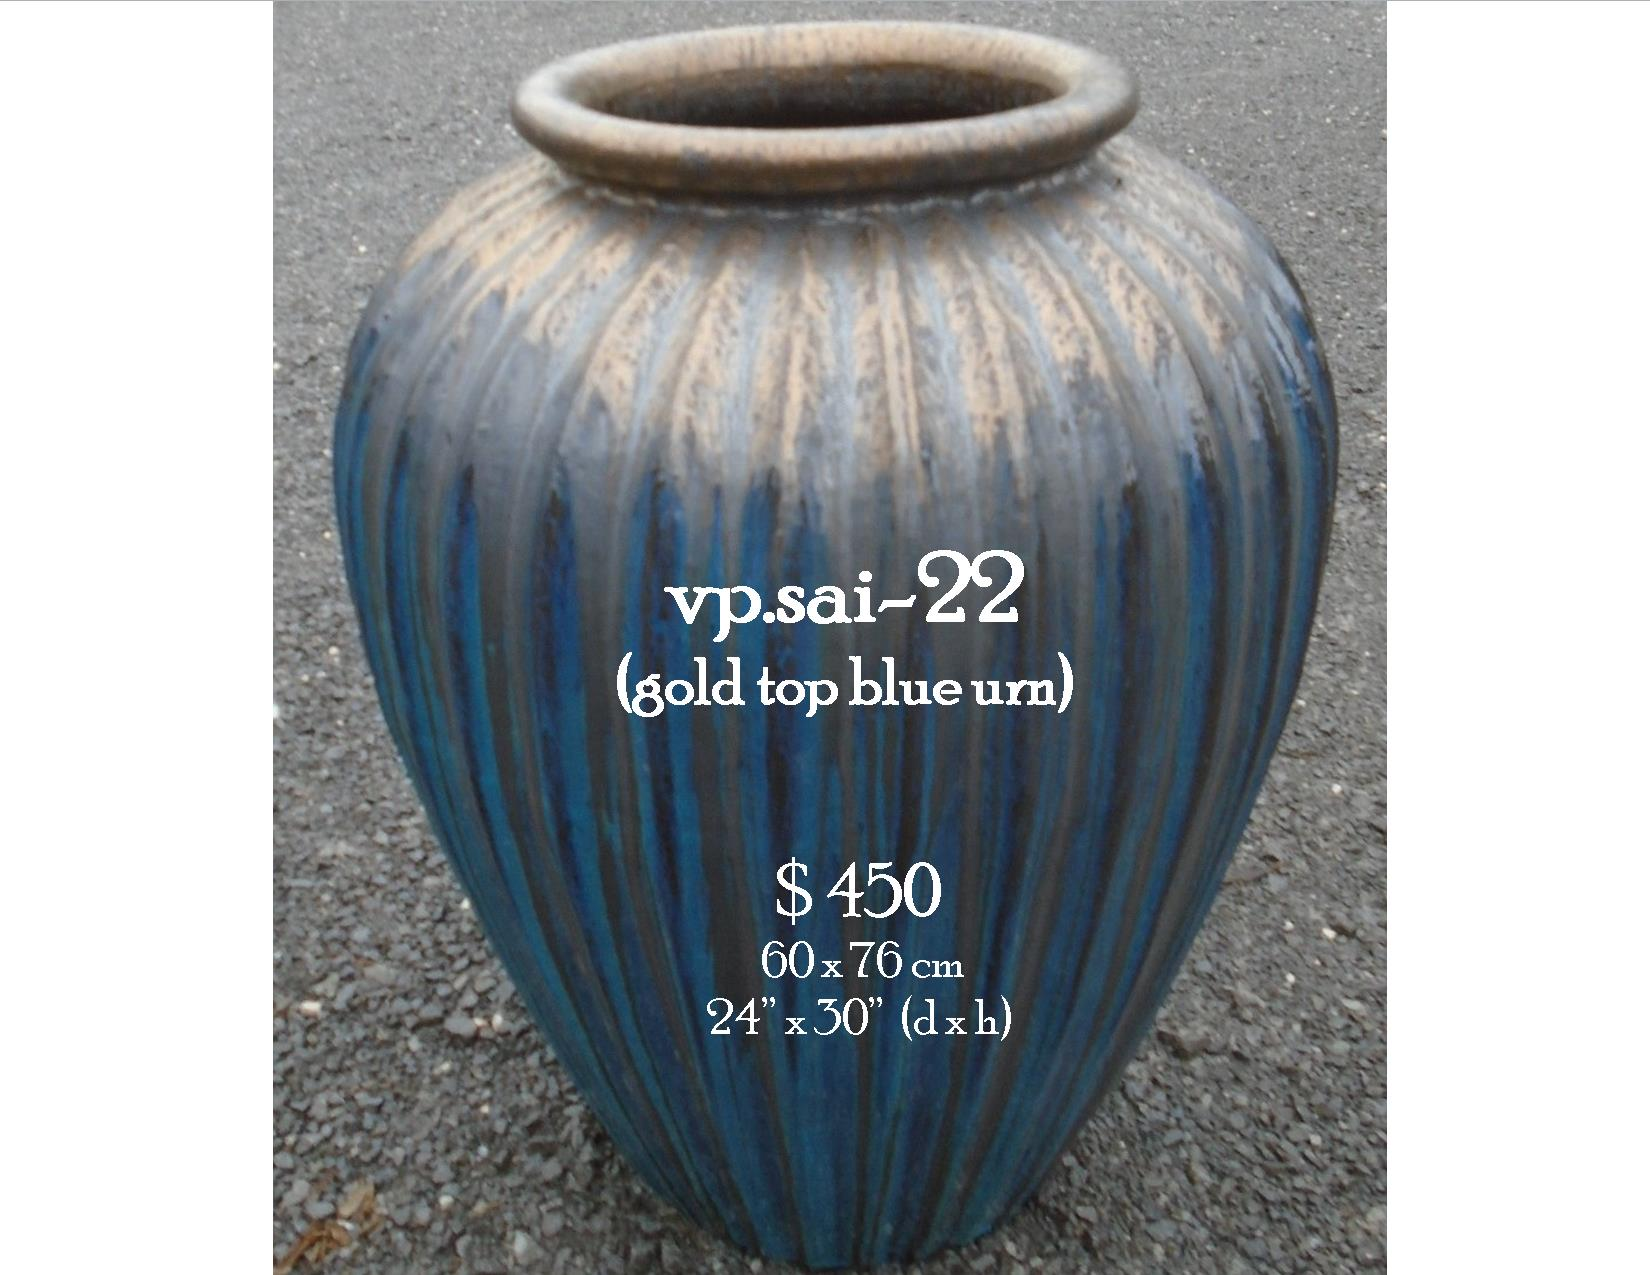 vp.sai-22  gold top blue urn